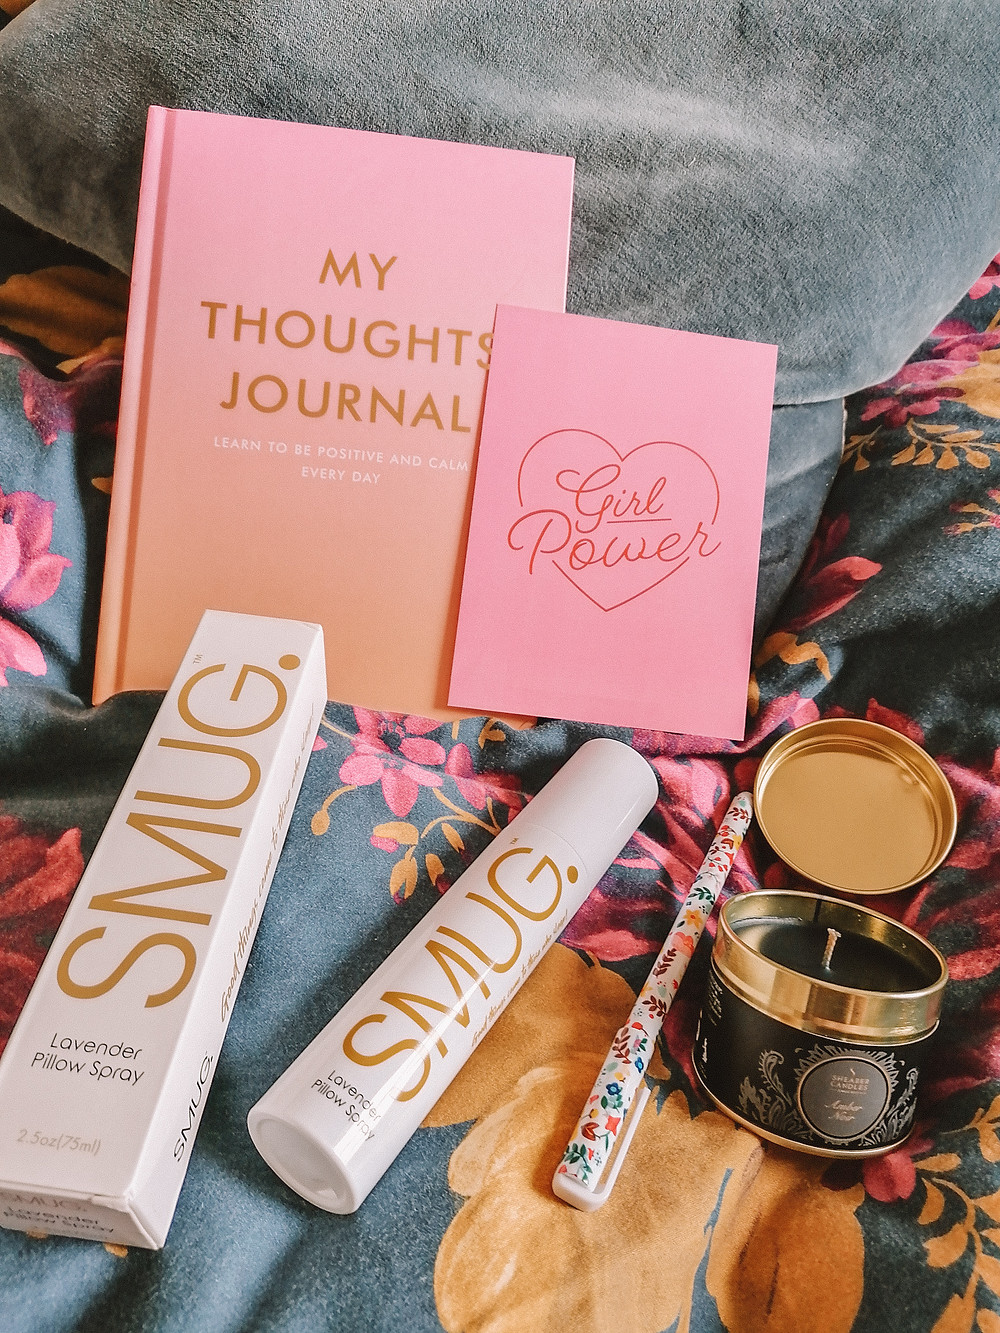 image shows smug pillow spray, a floral pen, a black candle in a pot, a pink and orange thoughts journal and a pink postcard with Girl Power written on it in red inside a red heart